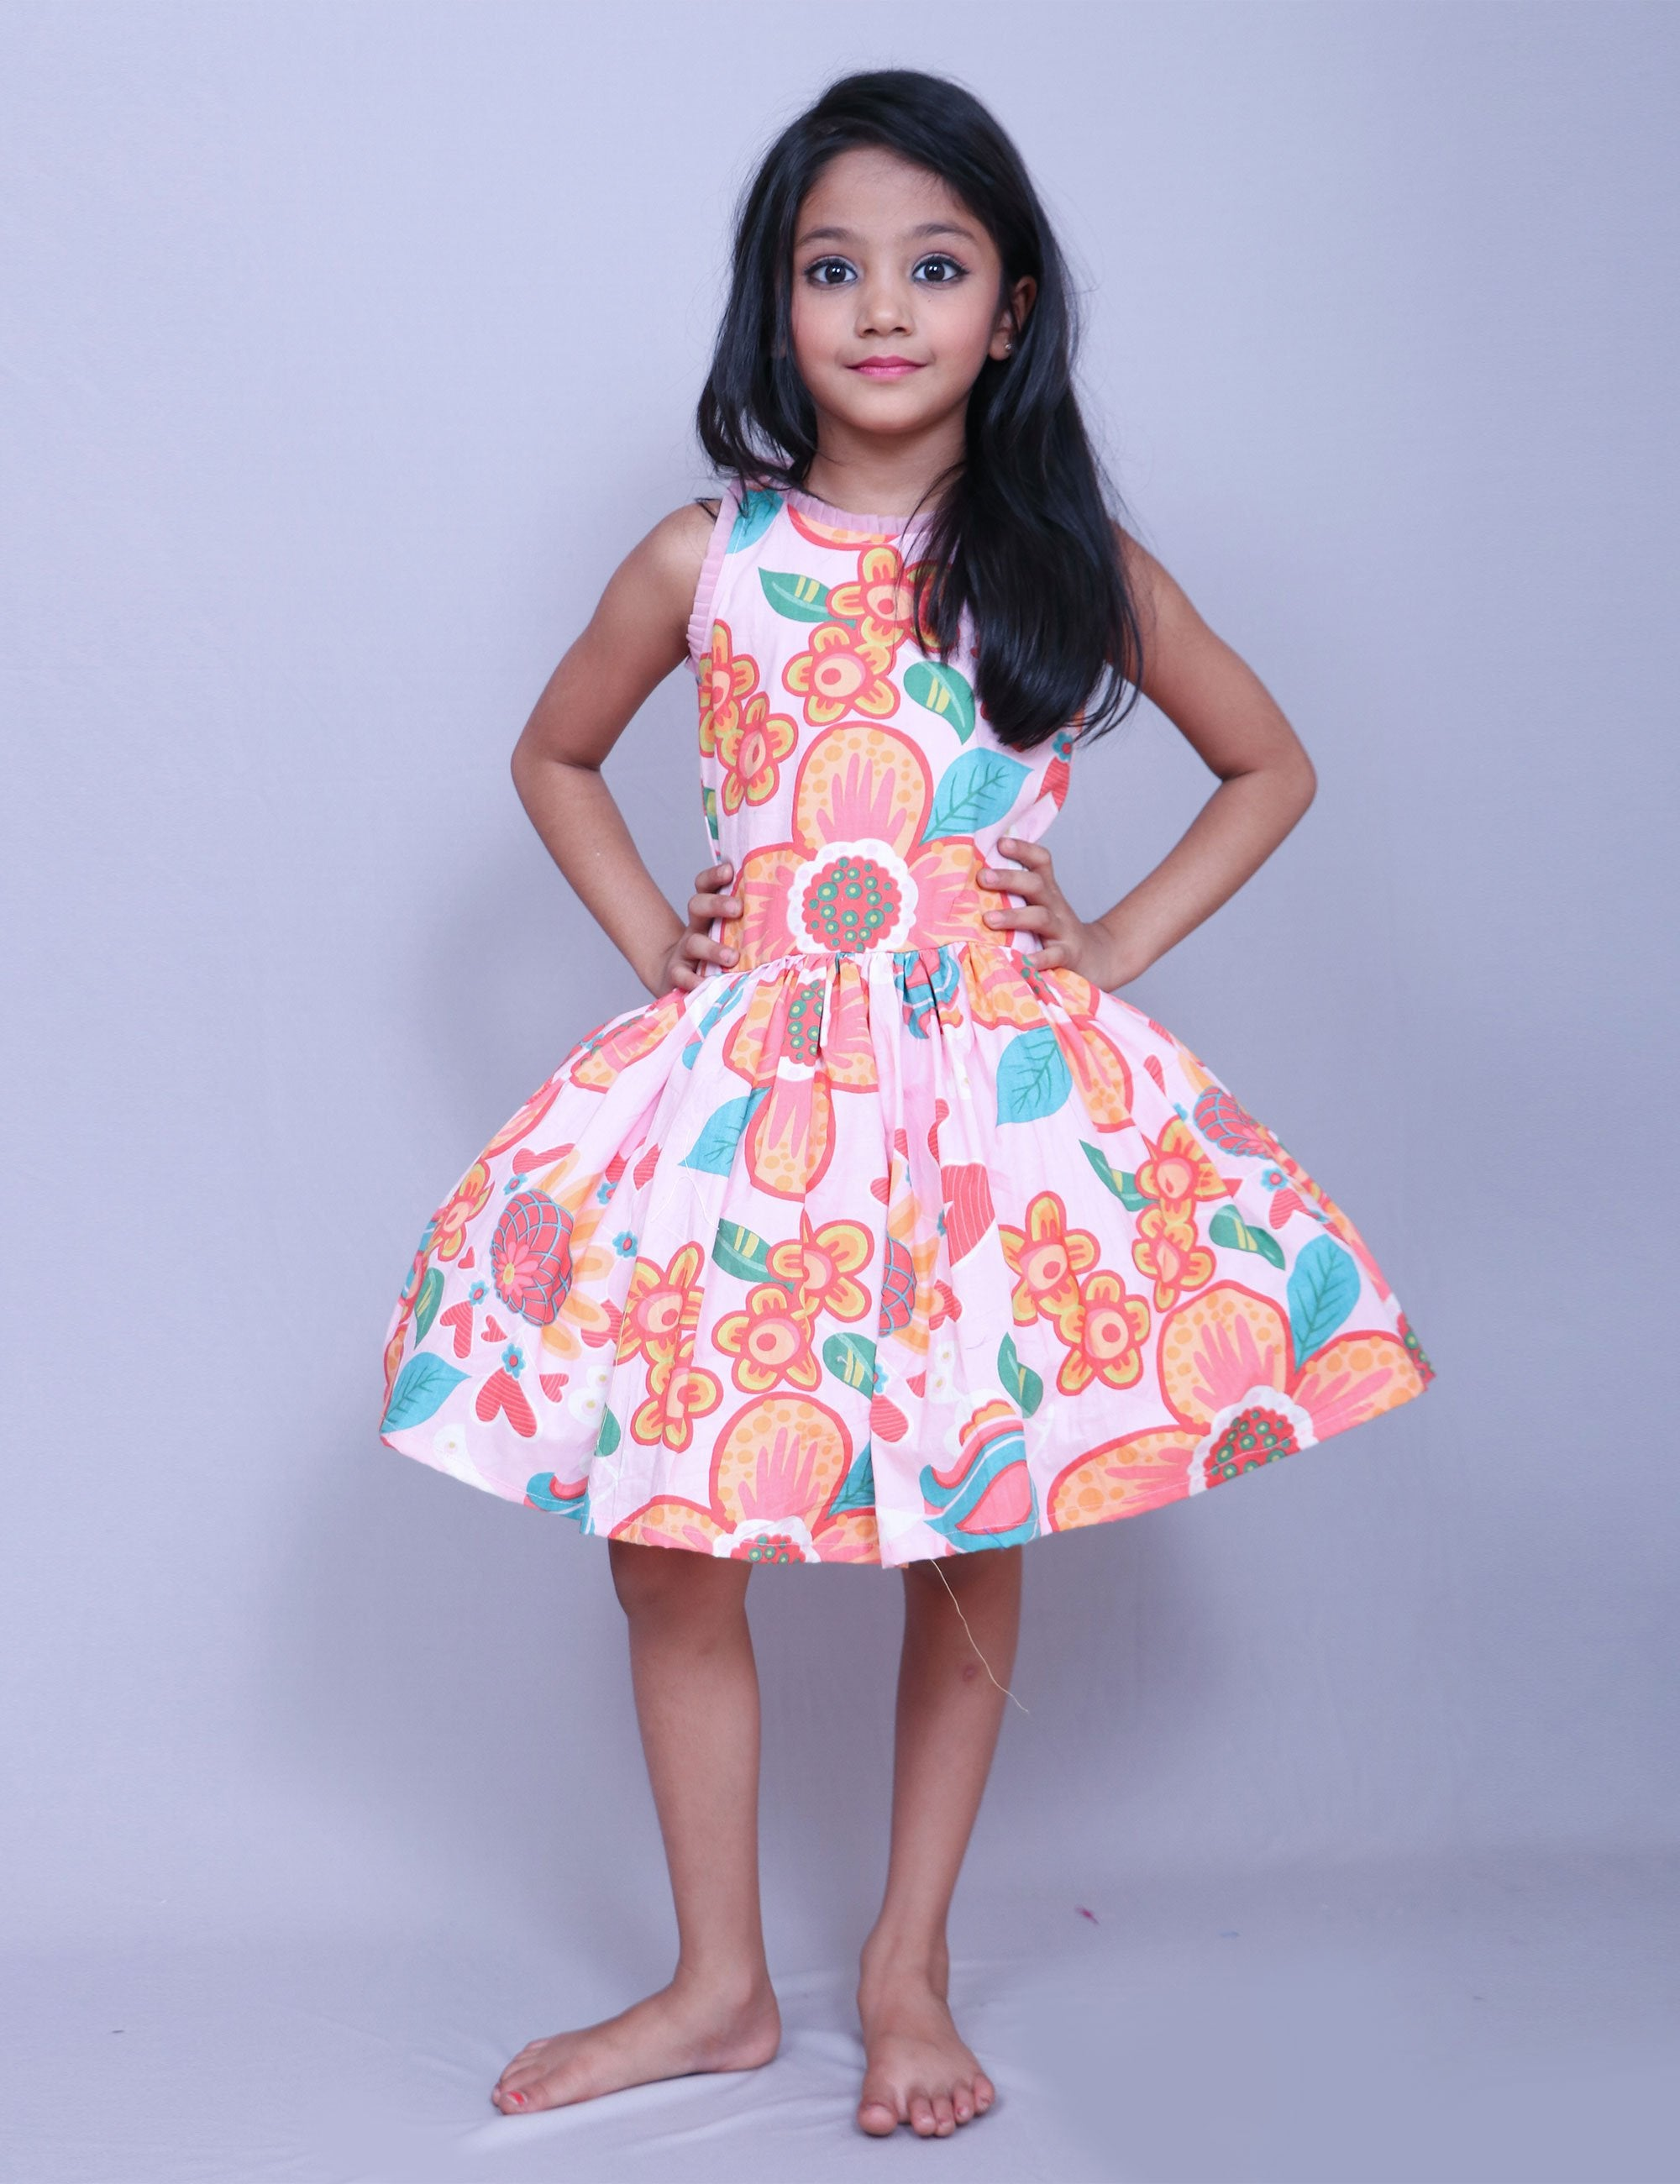 497dba6b6213 Buy Floral Print Frock for Girls at best Price - Mini Firgun